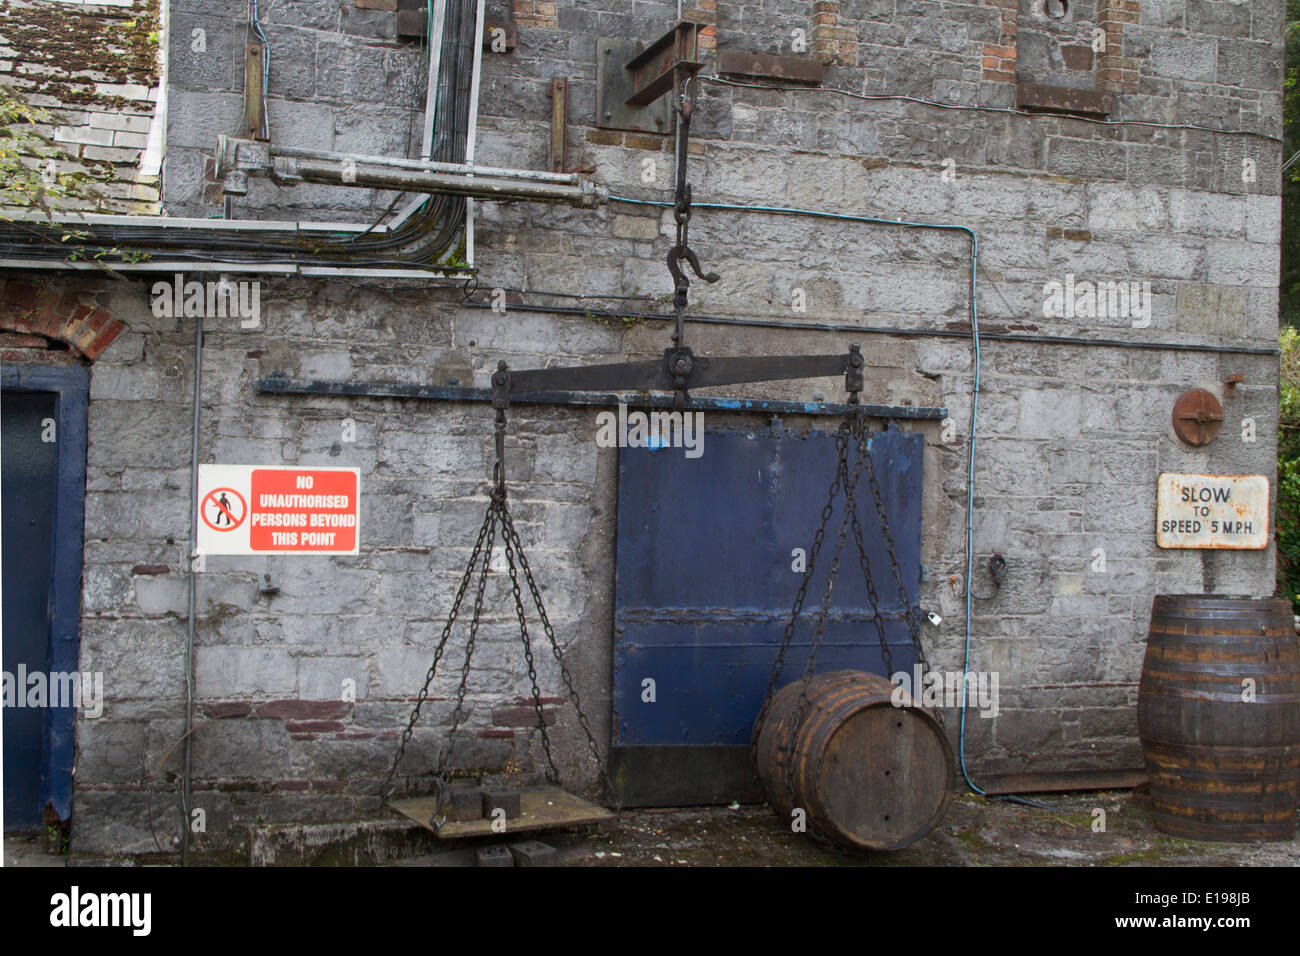 Scale used to weigh wh isky barrels to determine excise tax Jameson Distillery,Ireland - Stock Image